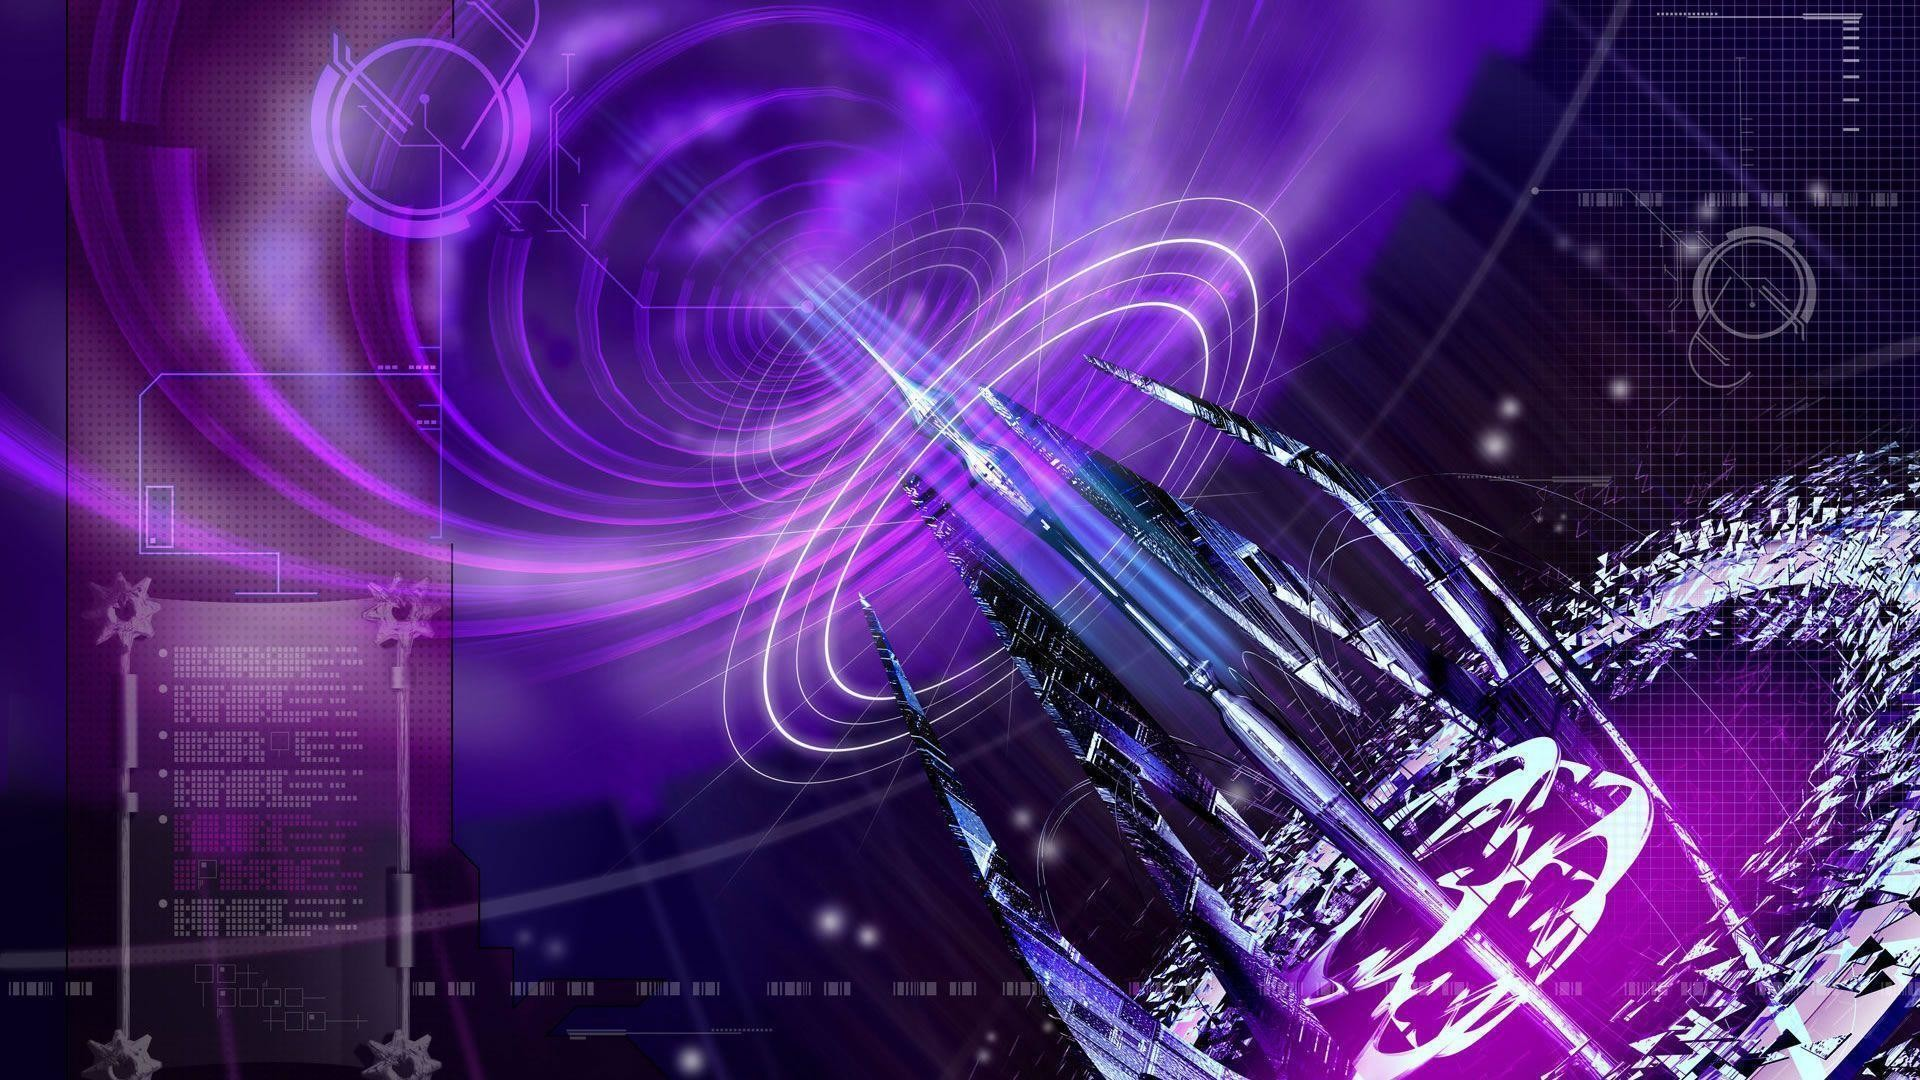 Cool Purple Wallpapers – Wallpaper CaveCool Blue And Purple Backgrounds